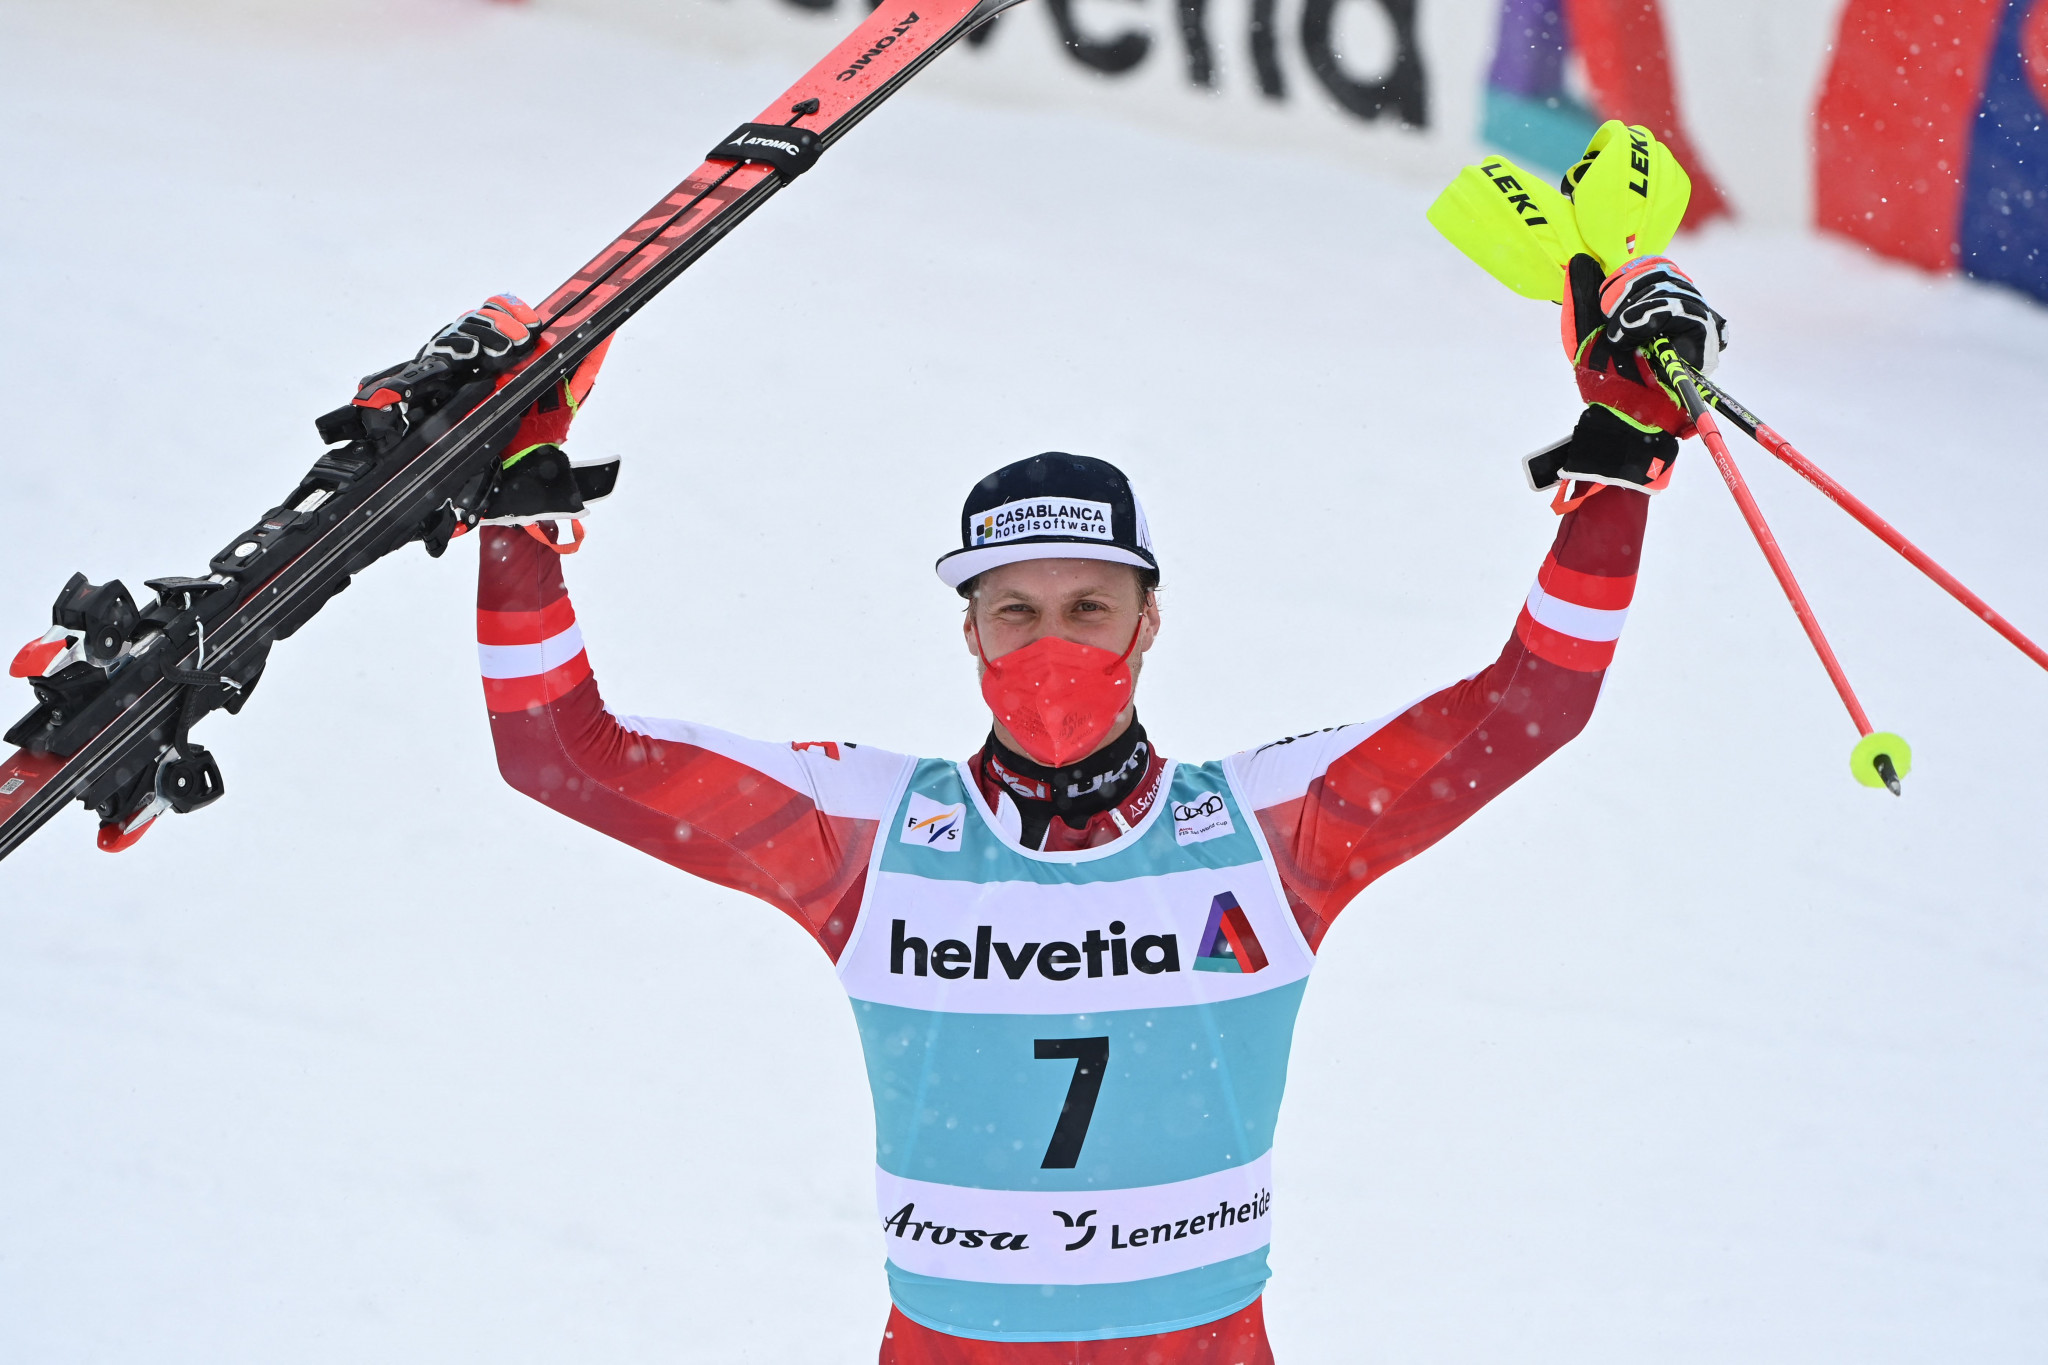 Feller and Robinson end FIS Alpine Ski World Cup season with victories